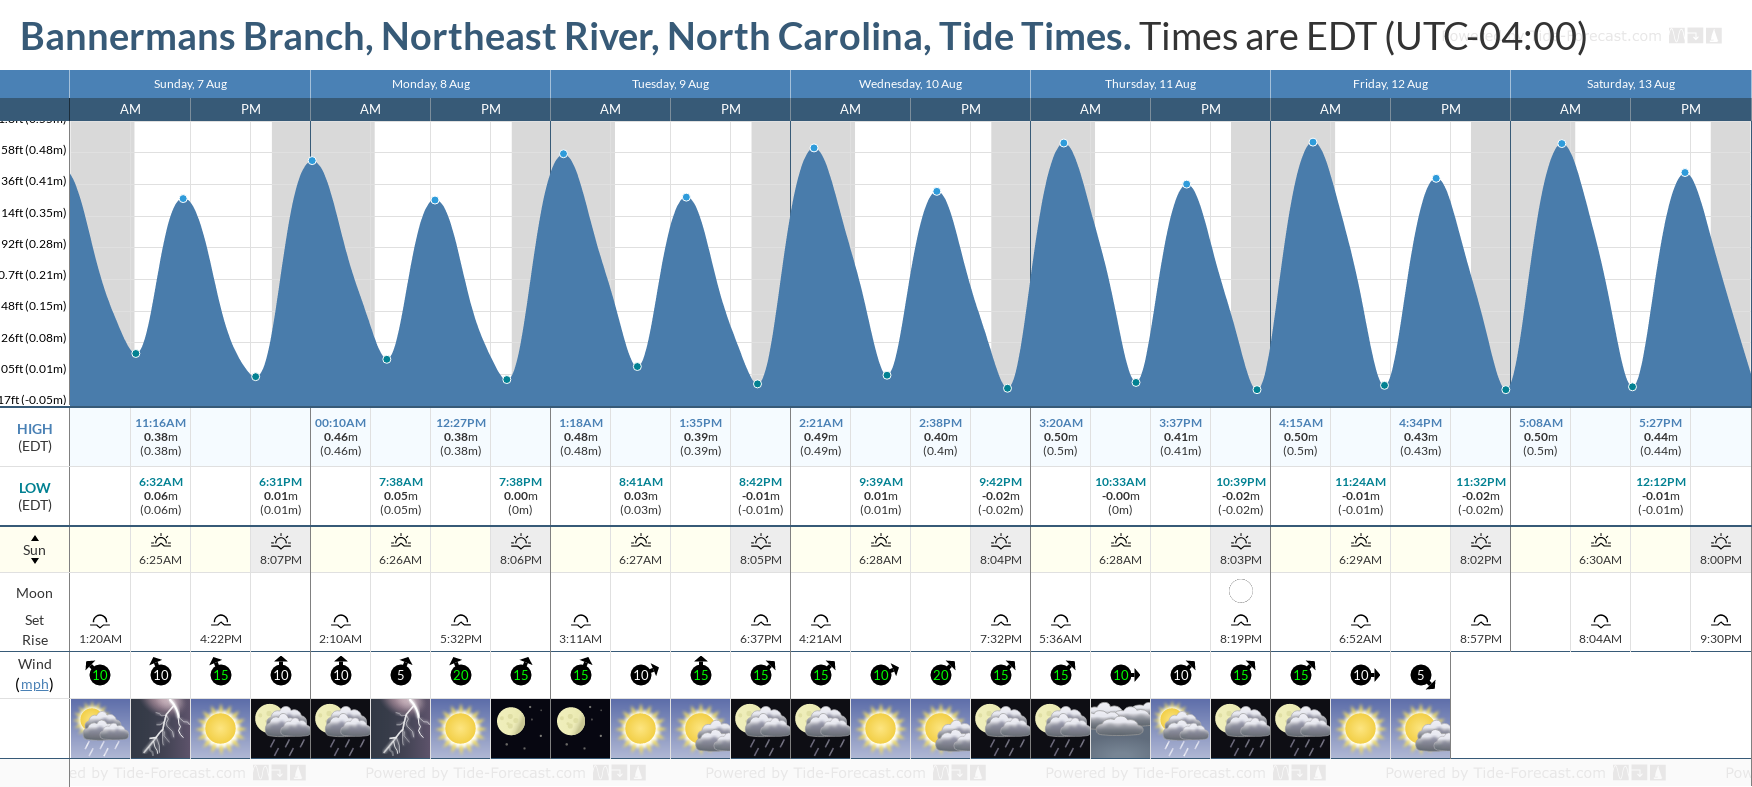 Bannermans Branch, Northeast River, North Carolina Tide Chart including high and low tide tide times for the next 7 days